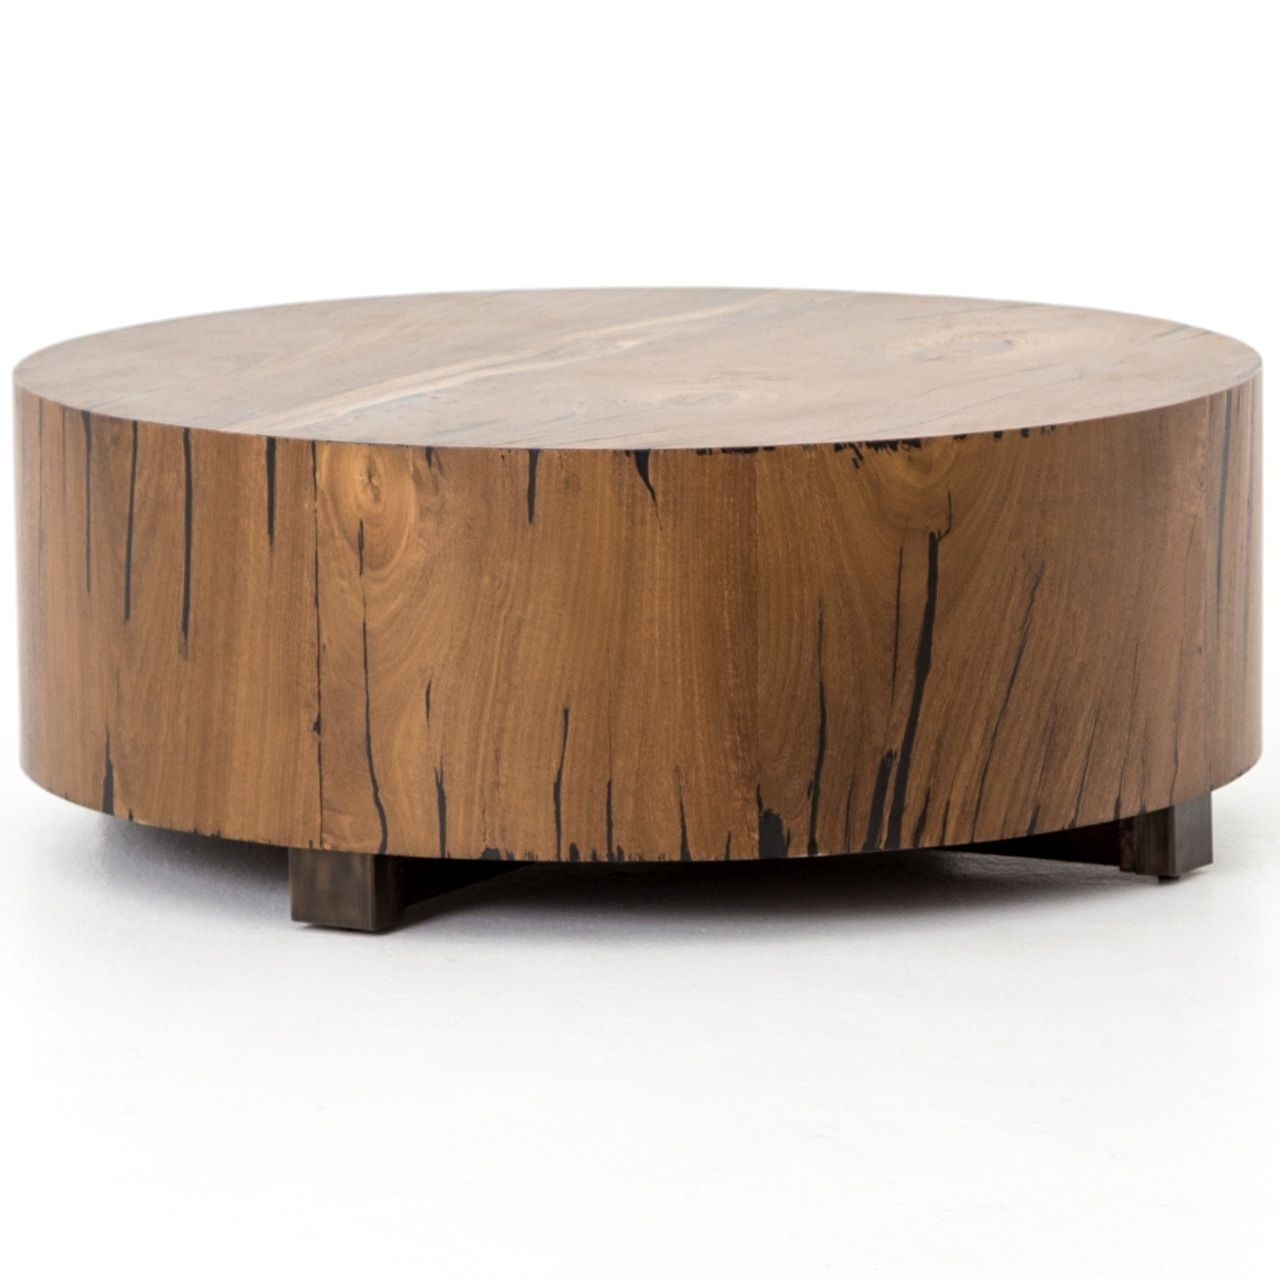 Hudson Round Natural Wood Block Coffee Table In 2021 Coffee Table Wood Round Wood Coffee Table Coffee Table